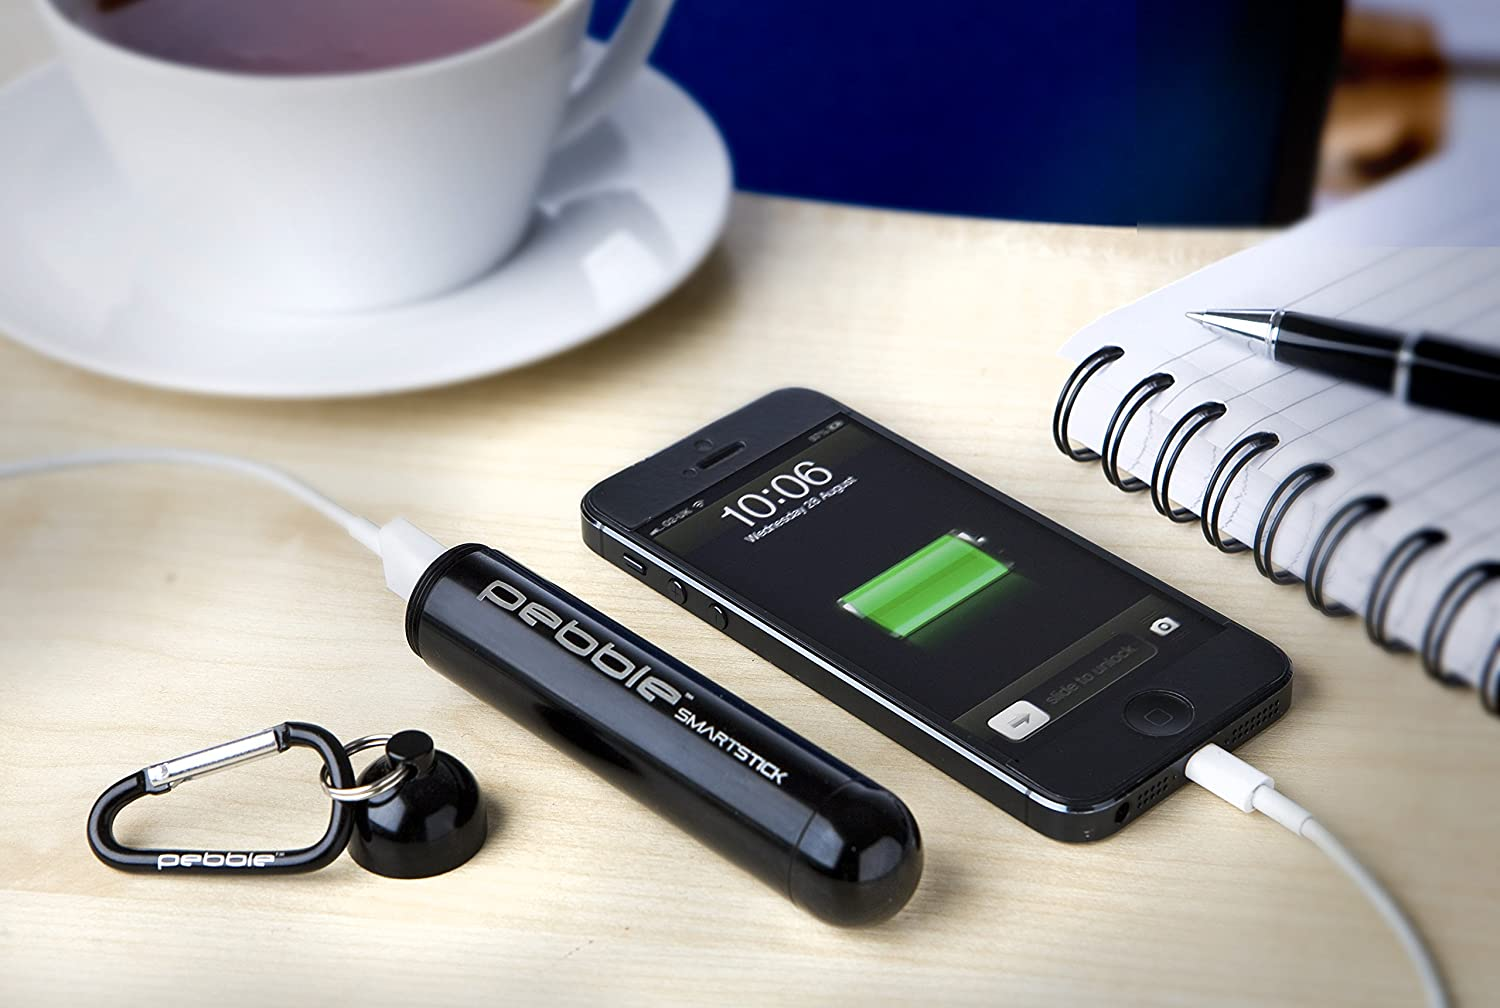 Pebble Smartstick is a powerful powerbank that holds a lot of charge in a really small tube-shaped case.